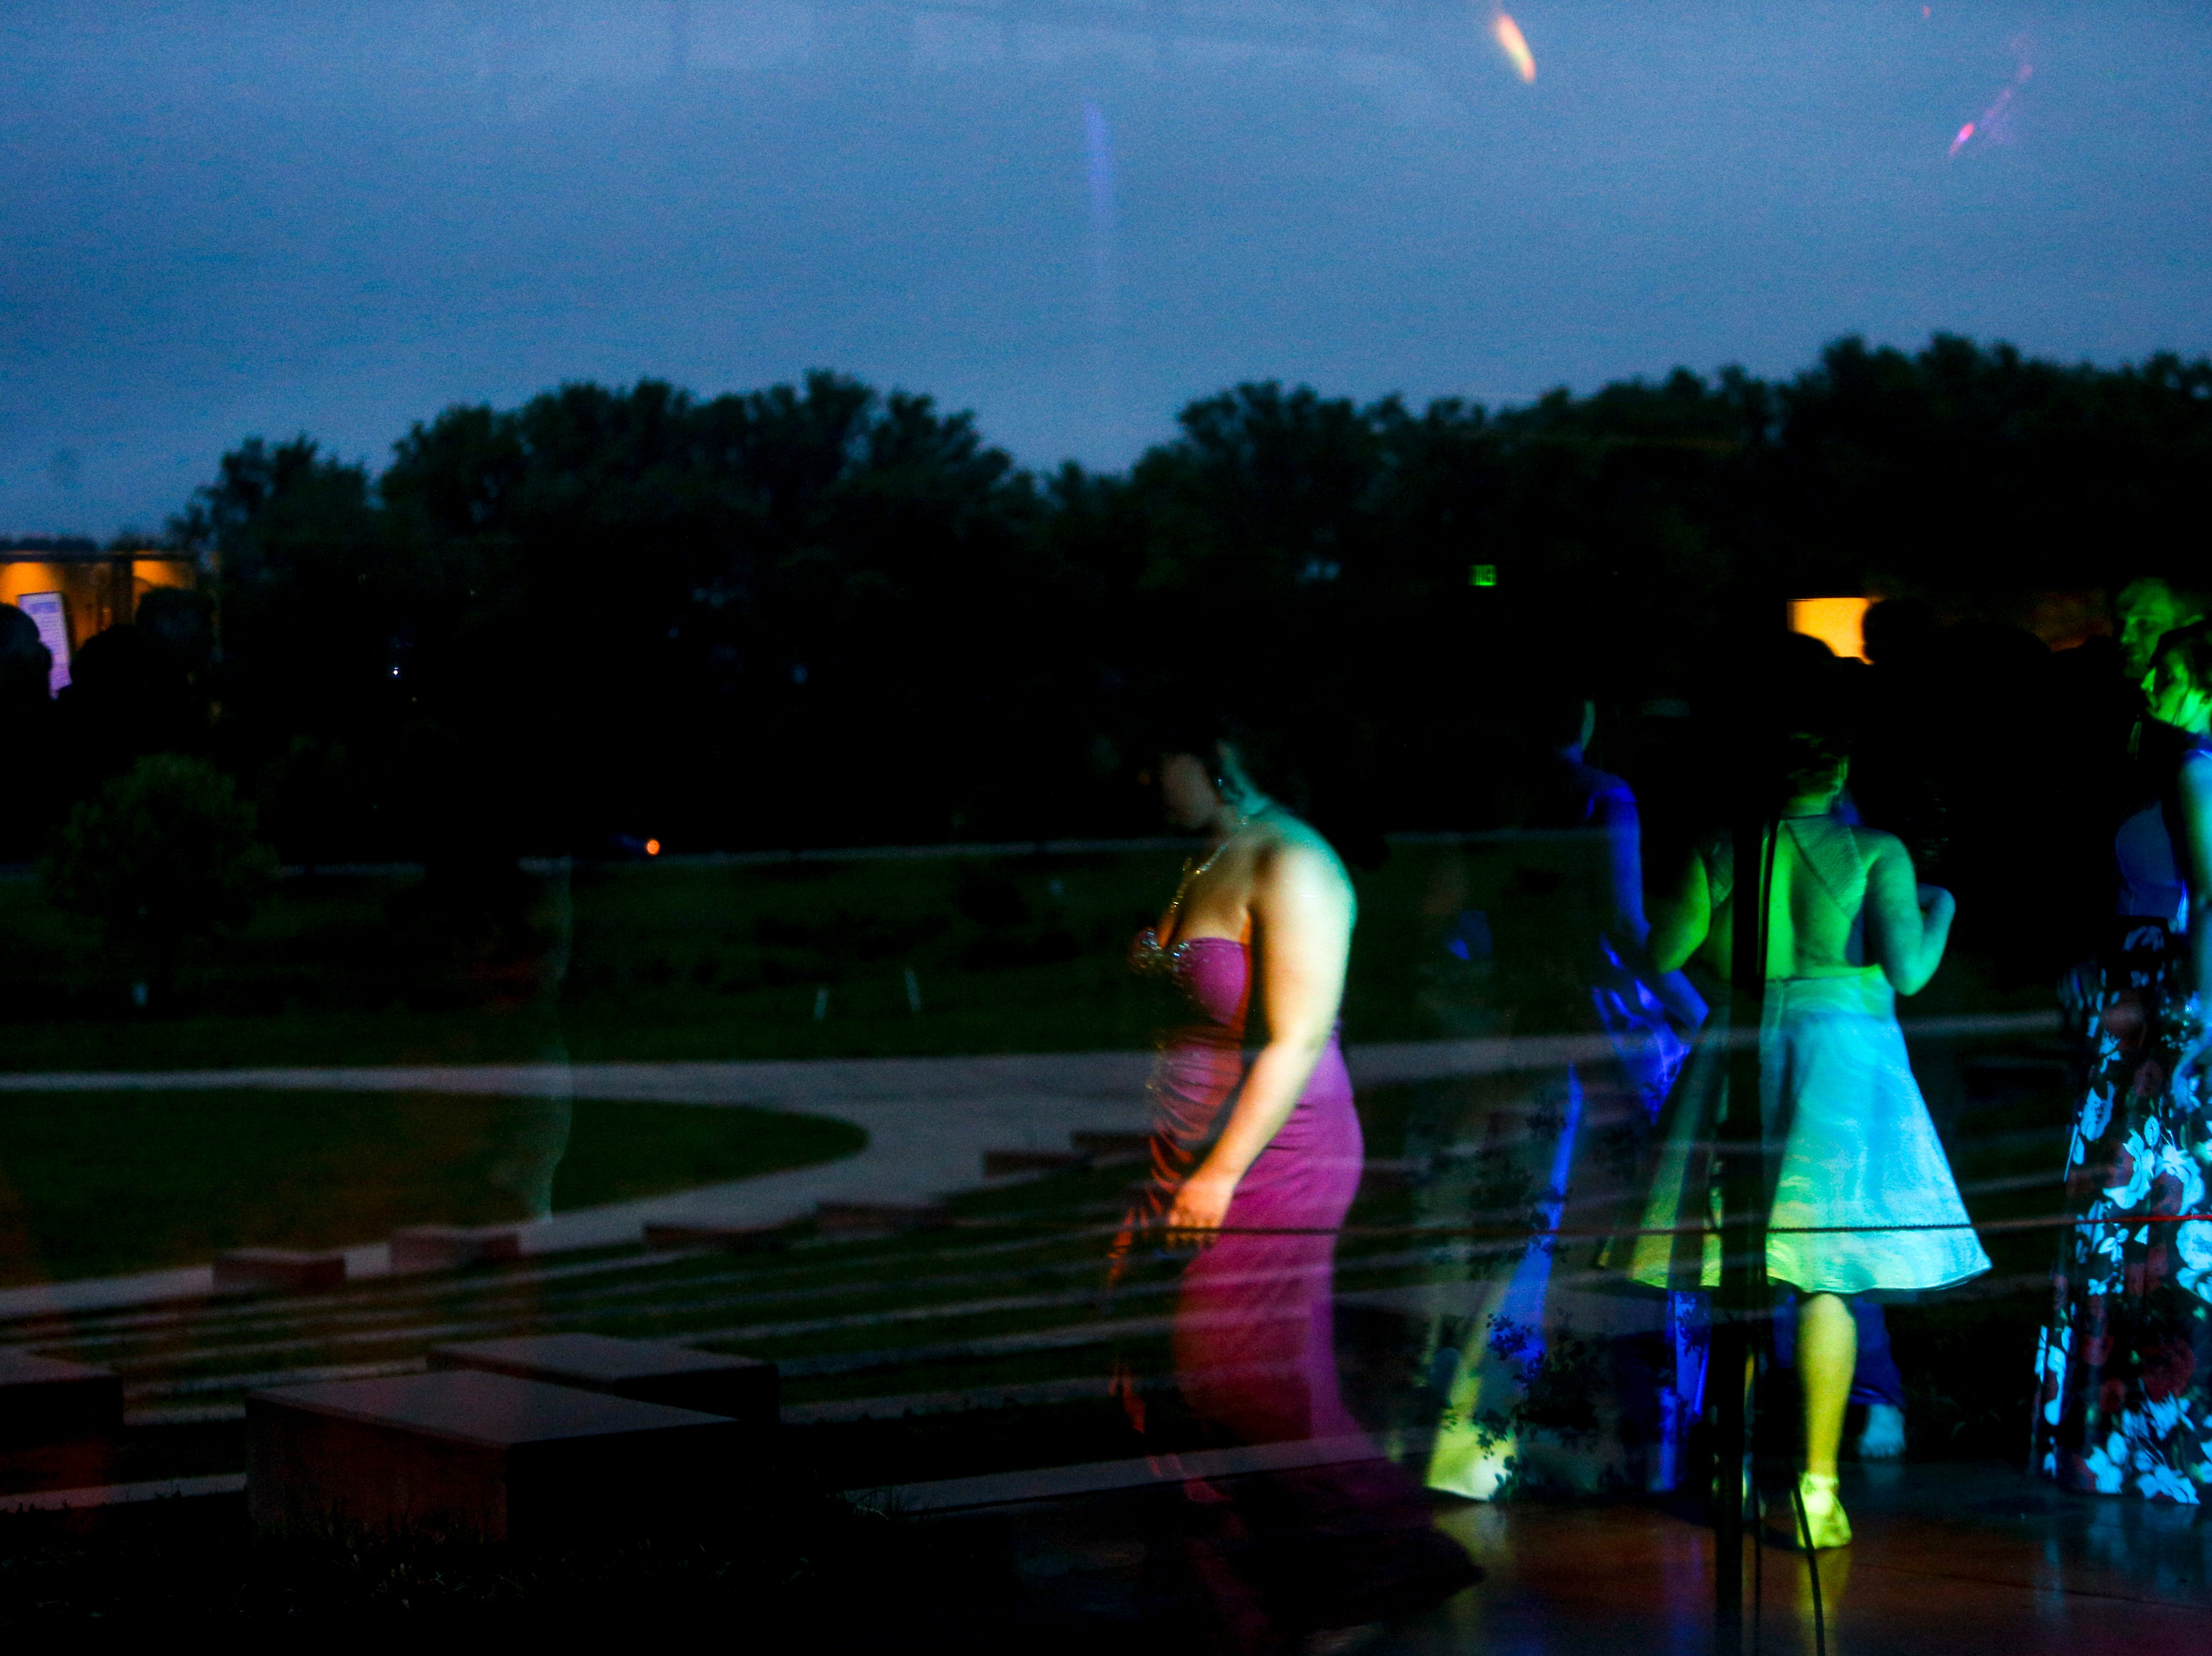 Hundreds of seniors from Montgomery County Central High School celebrated their senior prom during a break from the weather in an otherwise rainy day at Wilma Rudolph Event Center in Clarksville, Tenn., on Saturday, May 11, 2019.